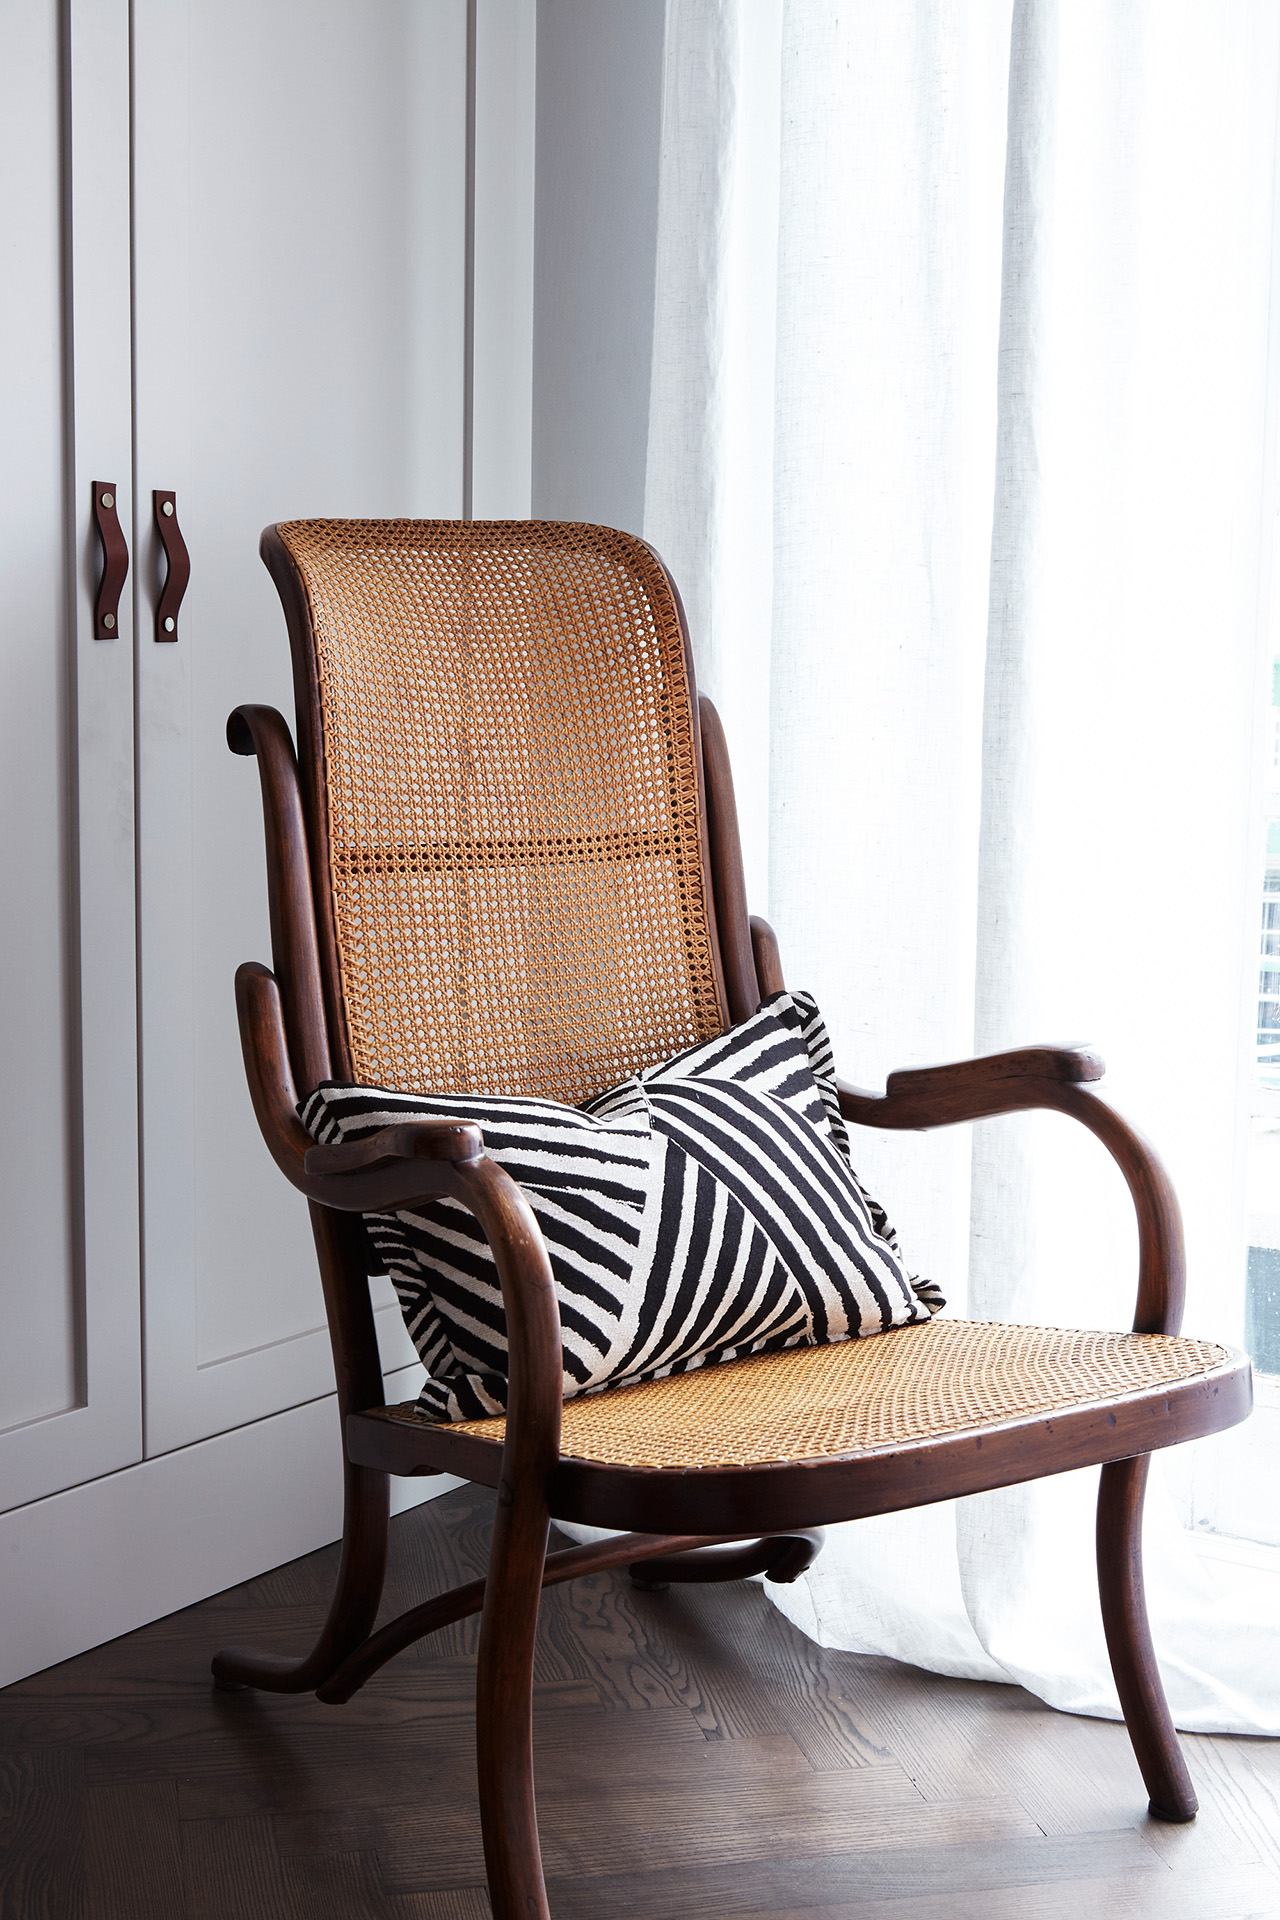 regents-park-london-apartment-interiors-design-anna-burles-fresh-cool-modern-rattan-chair-stripped-pillow